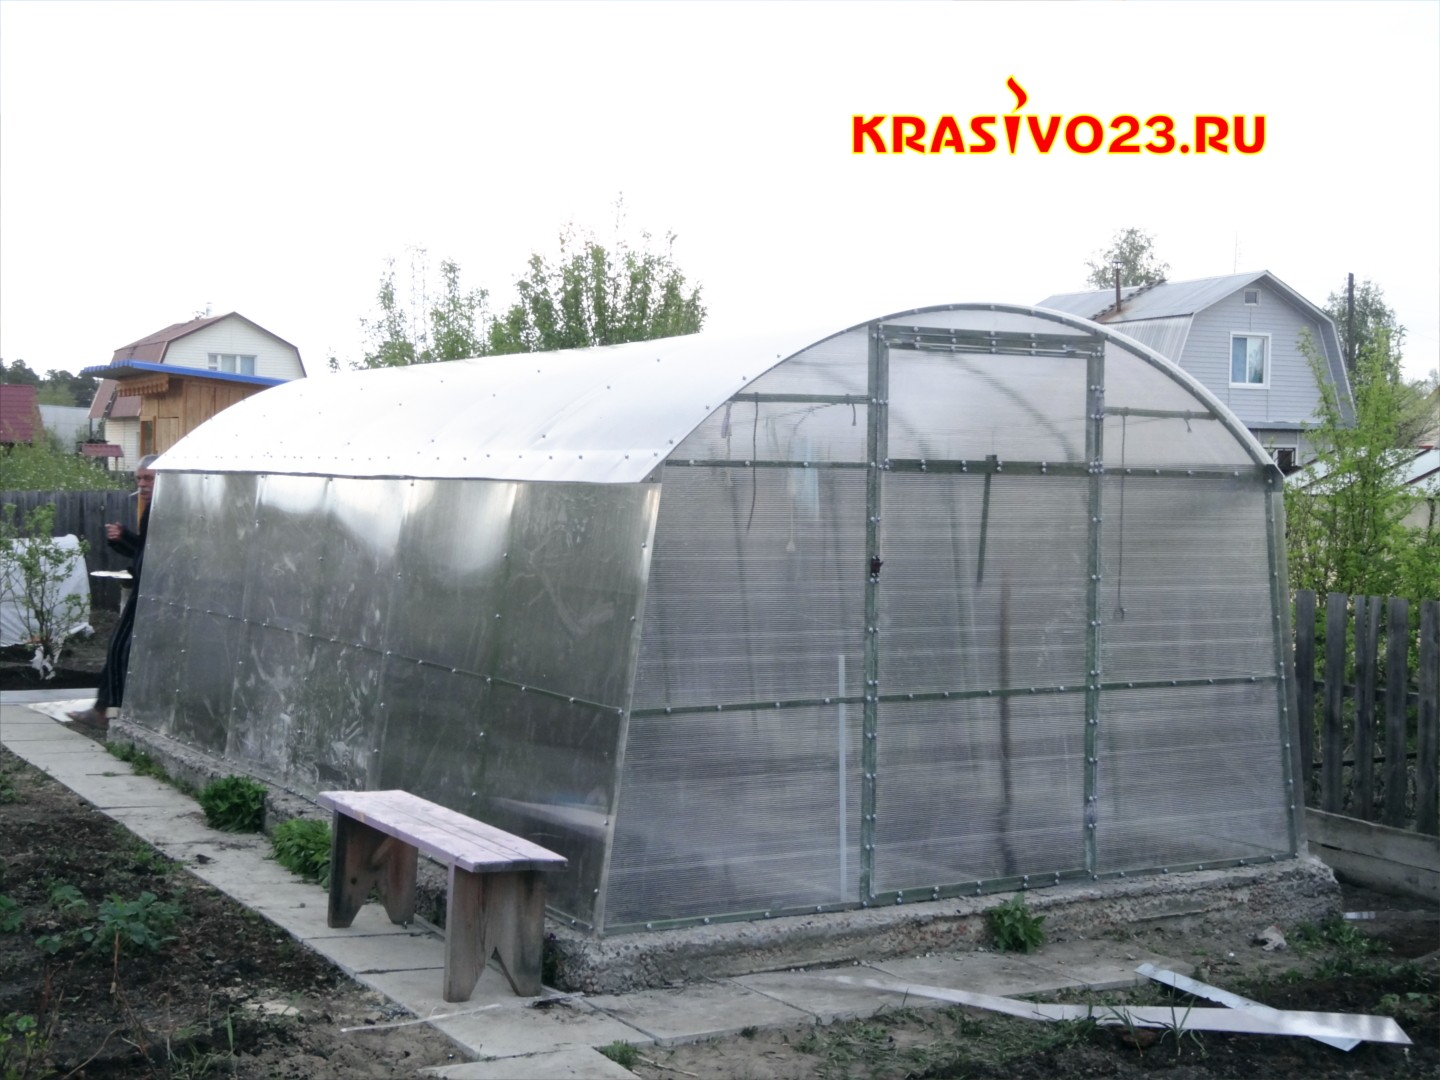 greenhouse-hothouse-glasshouse-installation-krasnodar-krasivo23.ru-004